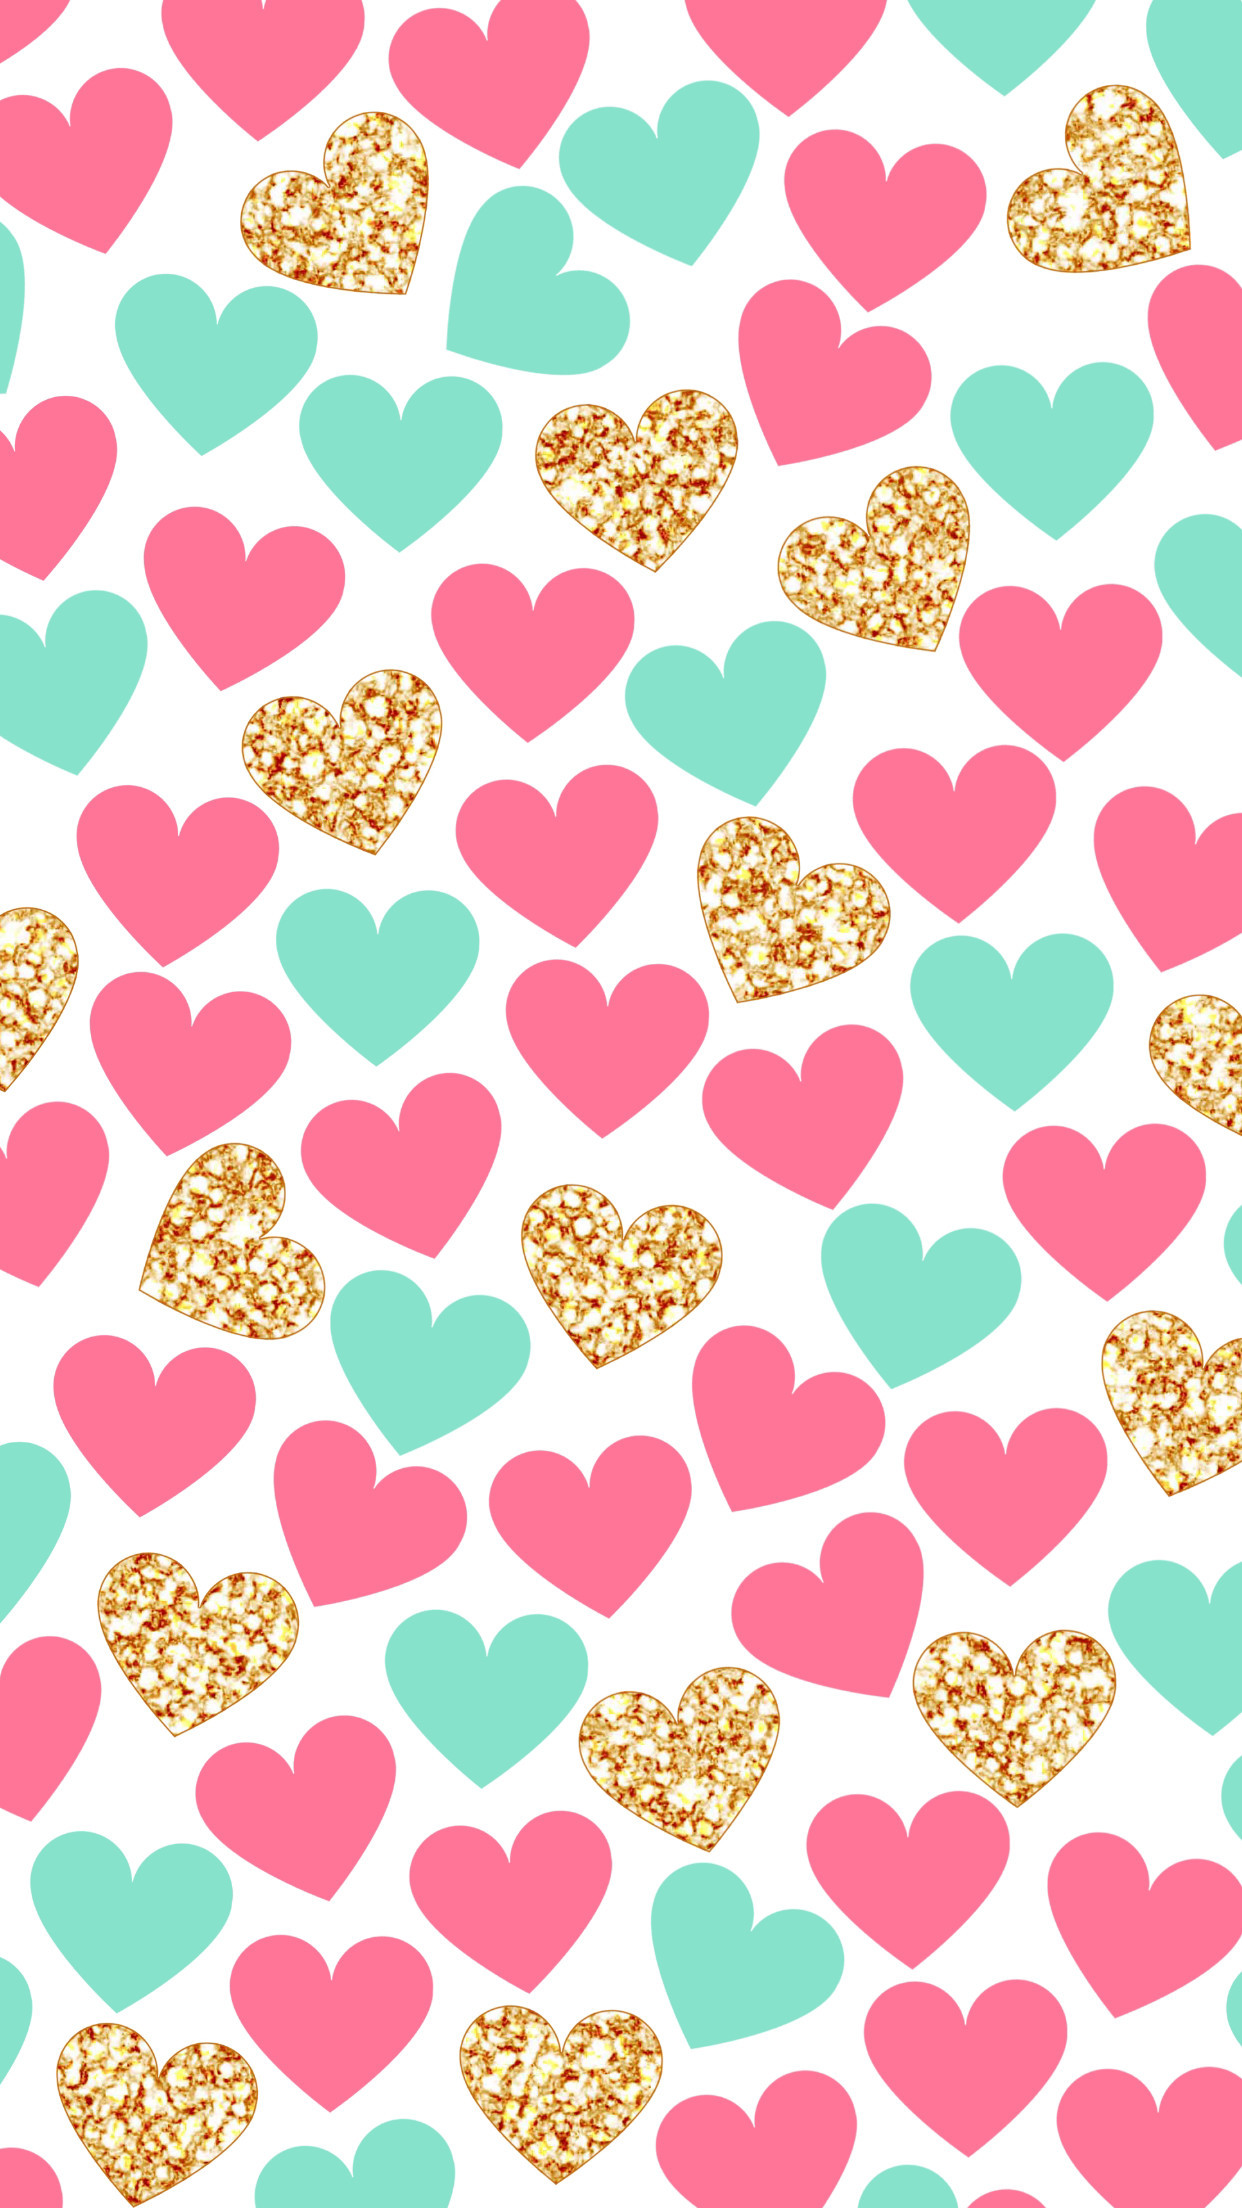 Cute Heart Backgrounds 50 Images